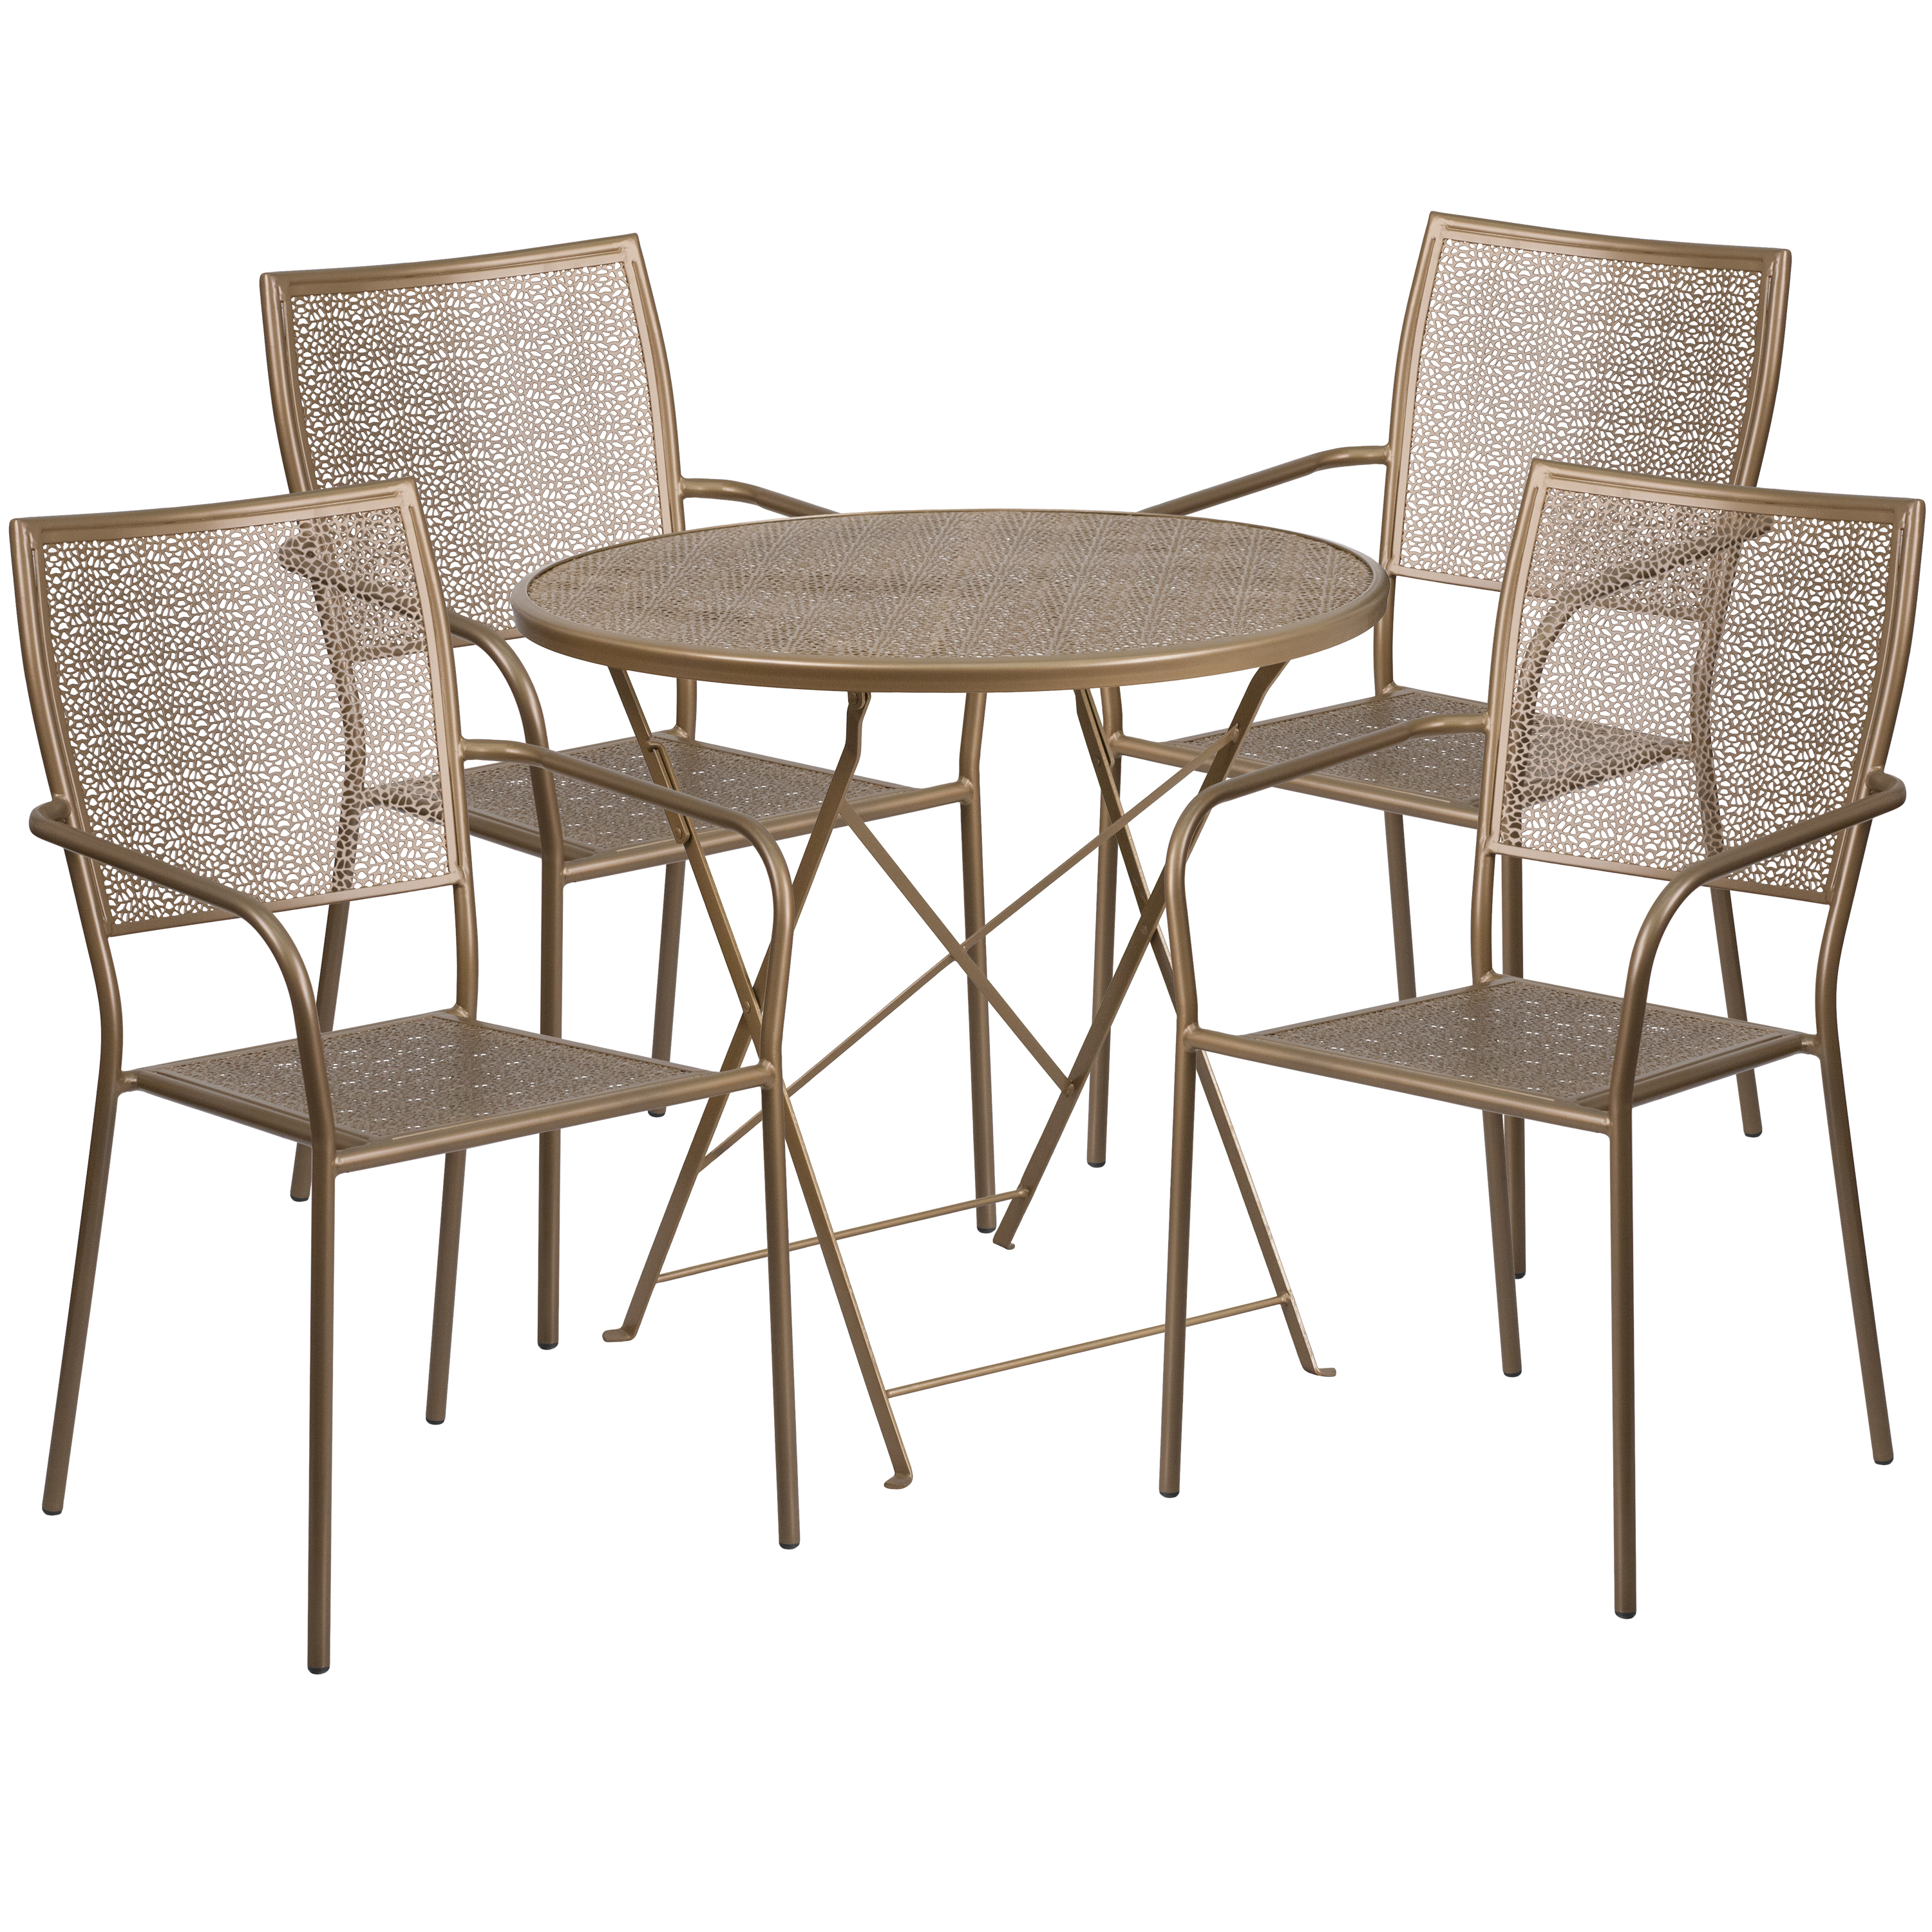 Flash Furniture 30'' Round Indoor-Outdoor Steel Folding Patio Table Set with 4 Square Back Chairs, Multiple Colors